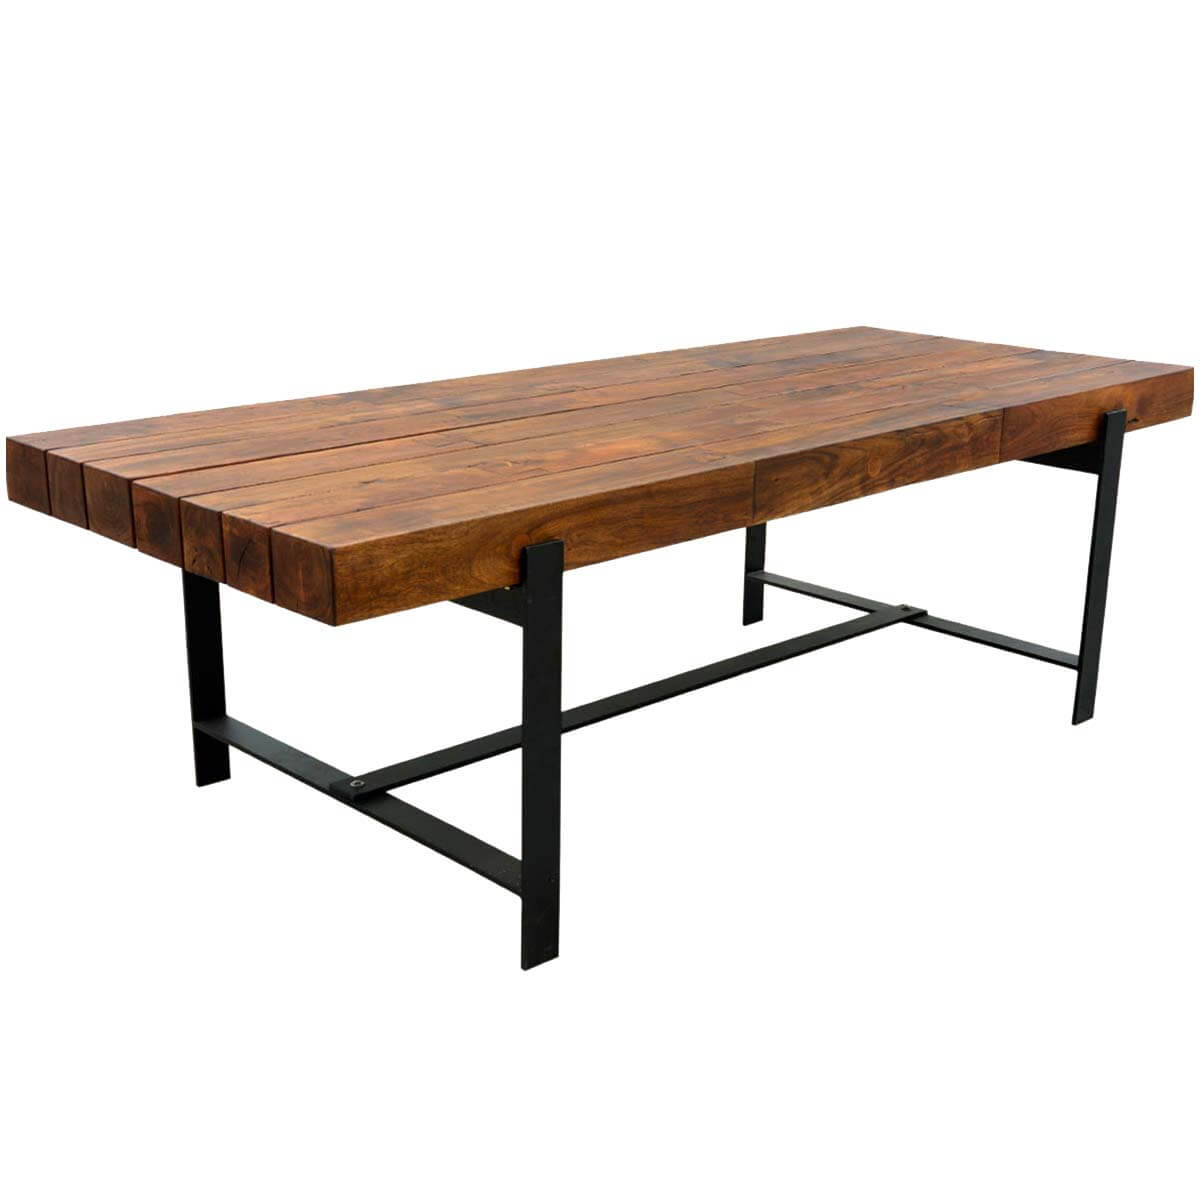 Industrial Iron & Acacia Wood 94 Large Rustic Dining Table